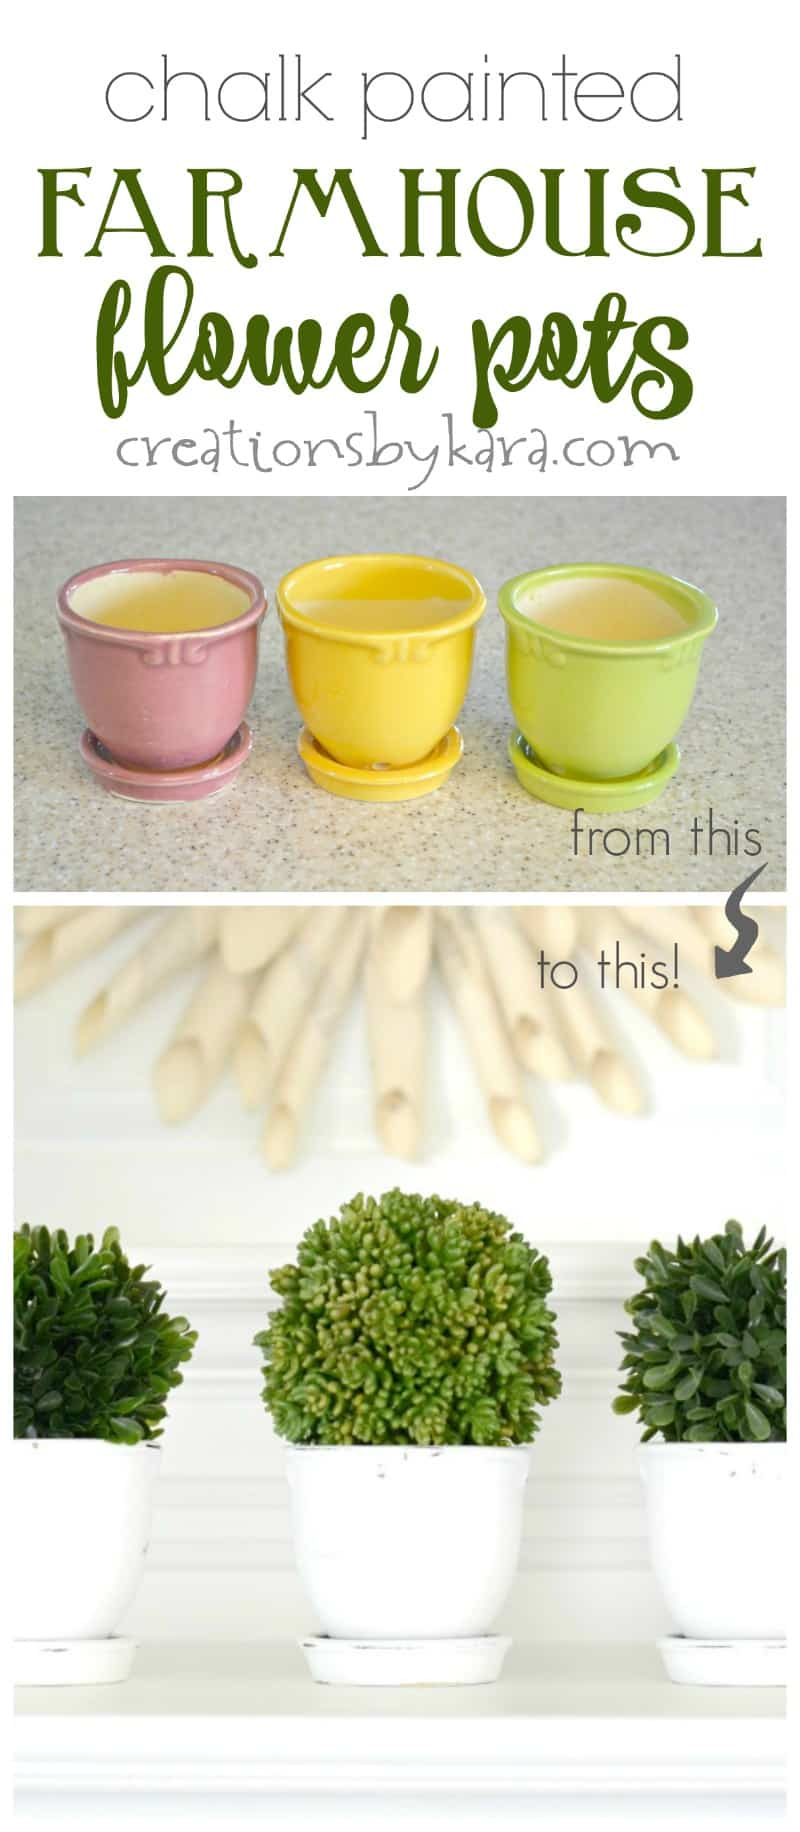 Love farmhouse style? These farmhouse flower pots are easy to make with chalk paint! An inexpensive way to add a farmhouse look.